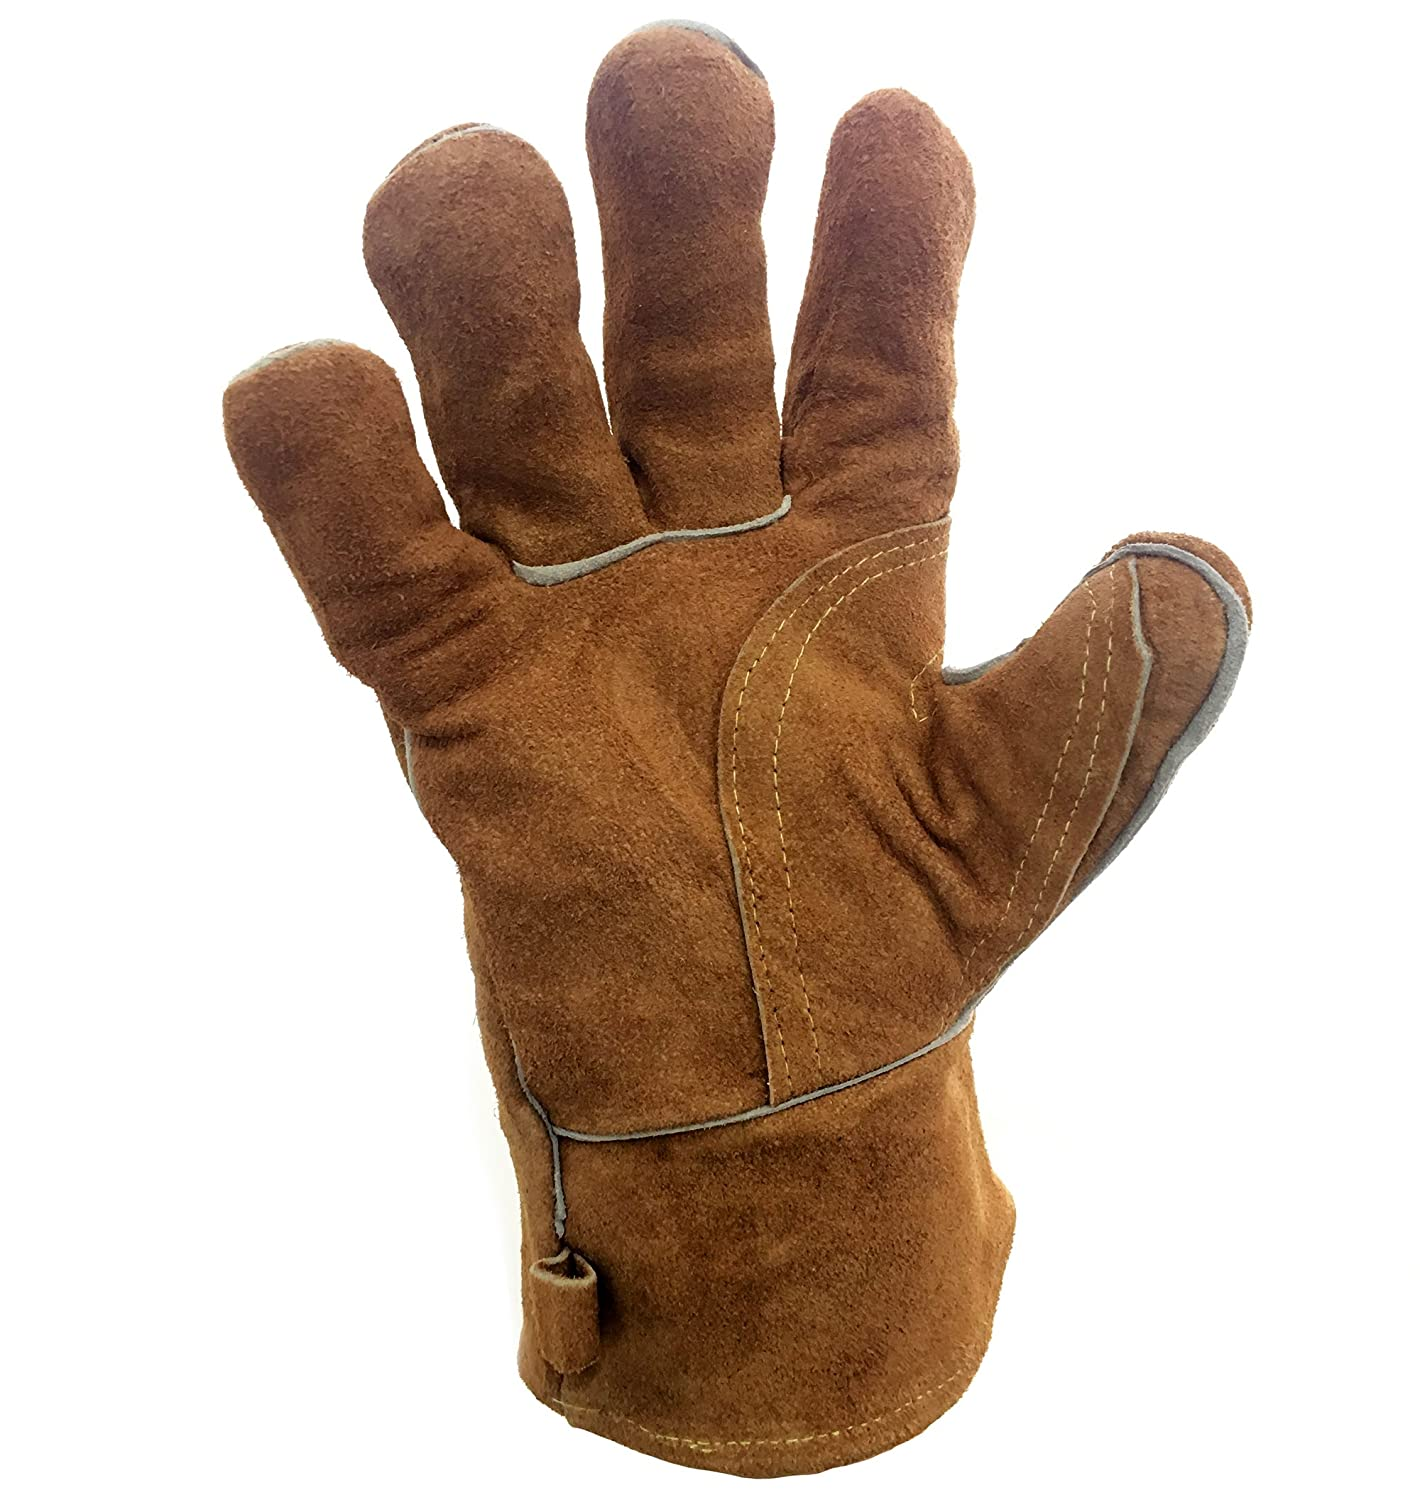 Cosystove Genuine Leather High Quality Heavy Duty Heat Resistant Safety Gauntlet Gloves for Woodburner Multi-Fuel Wood Burning Stoves Protection from Temperature and Ash Barbecue Open Coal Fire